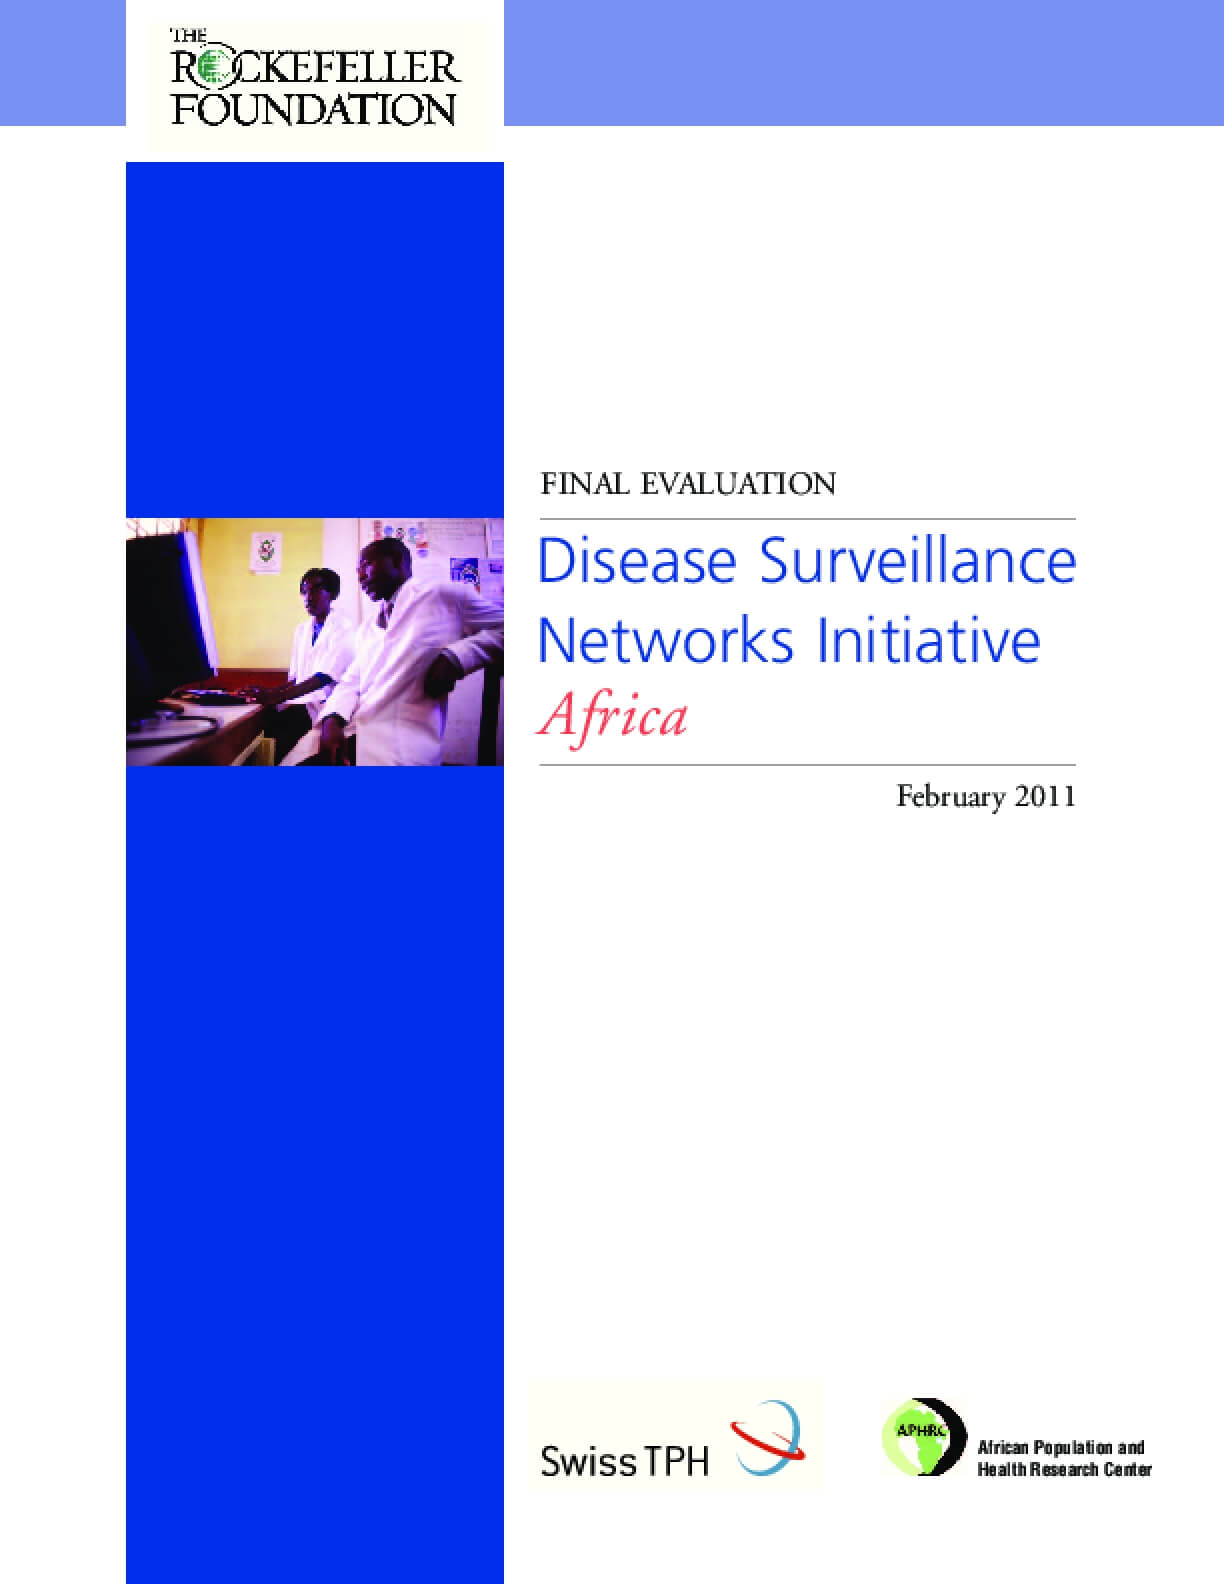 Disease Surveillance Networks Initiative Africa: Final Evaluation